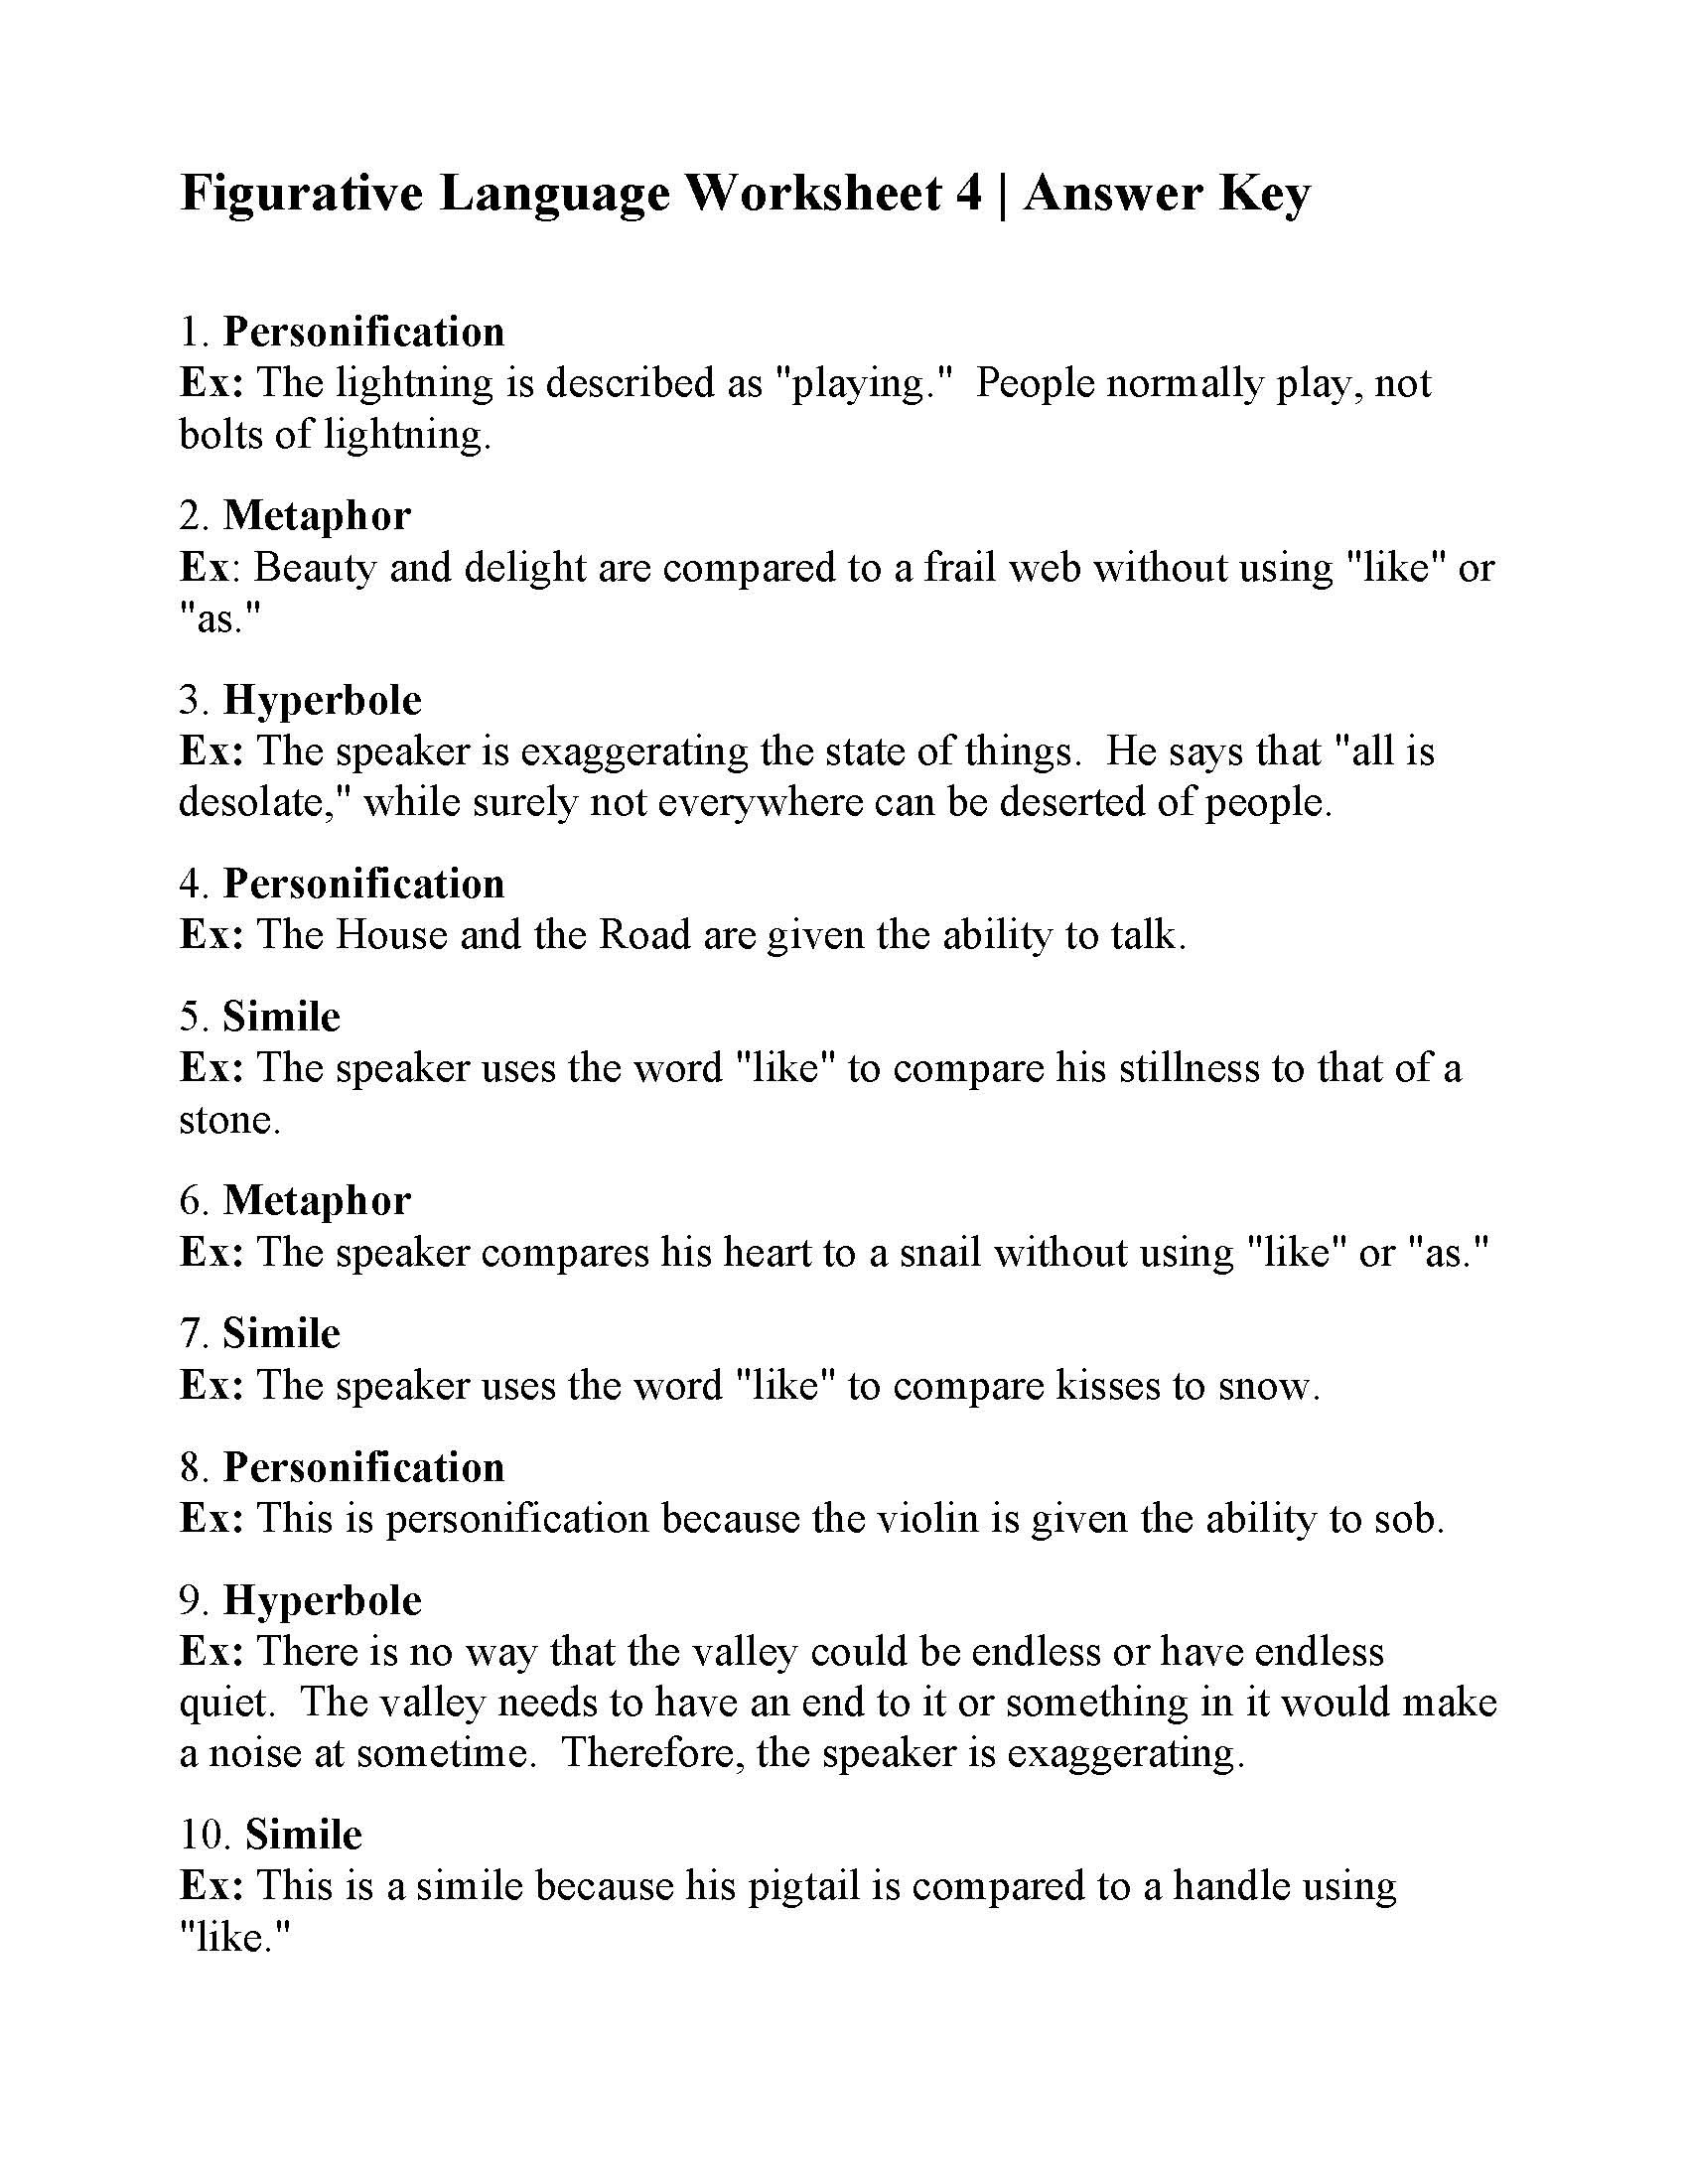 Figurative Language Worksheet High School Simile Worksheets for 6th Grade